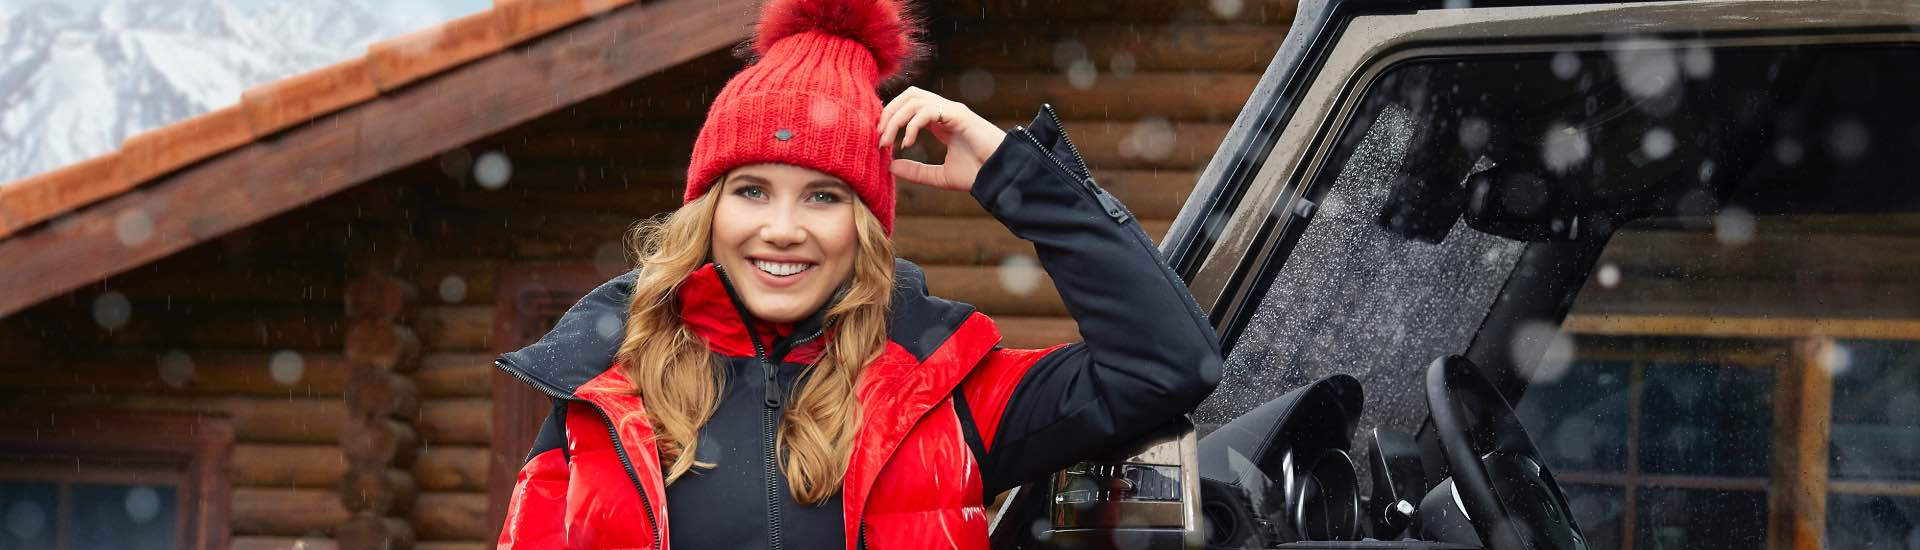 Dames collectie Skihut